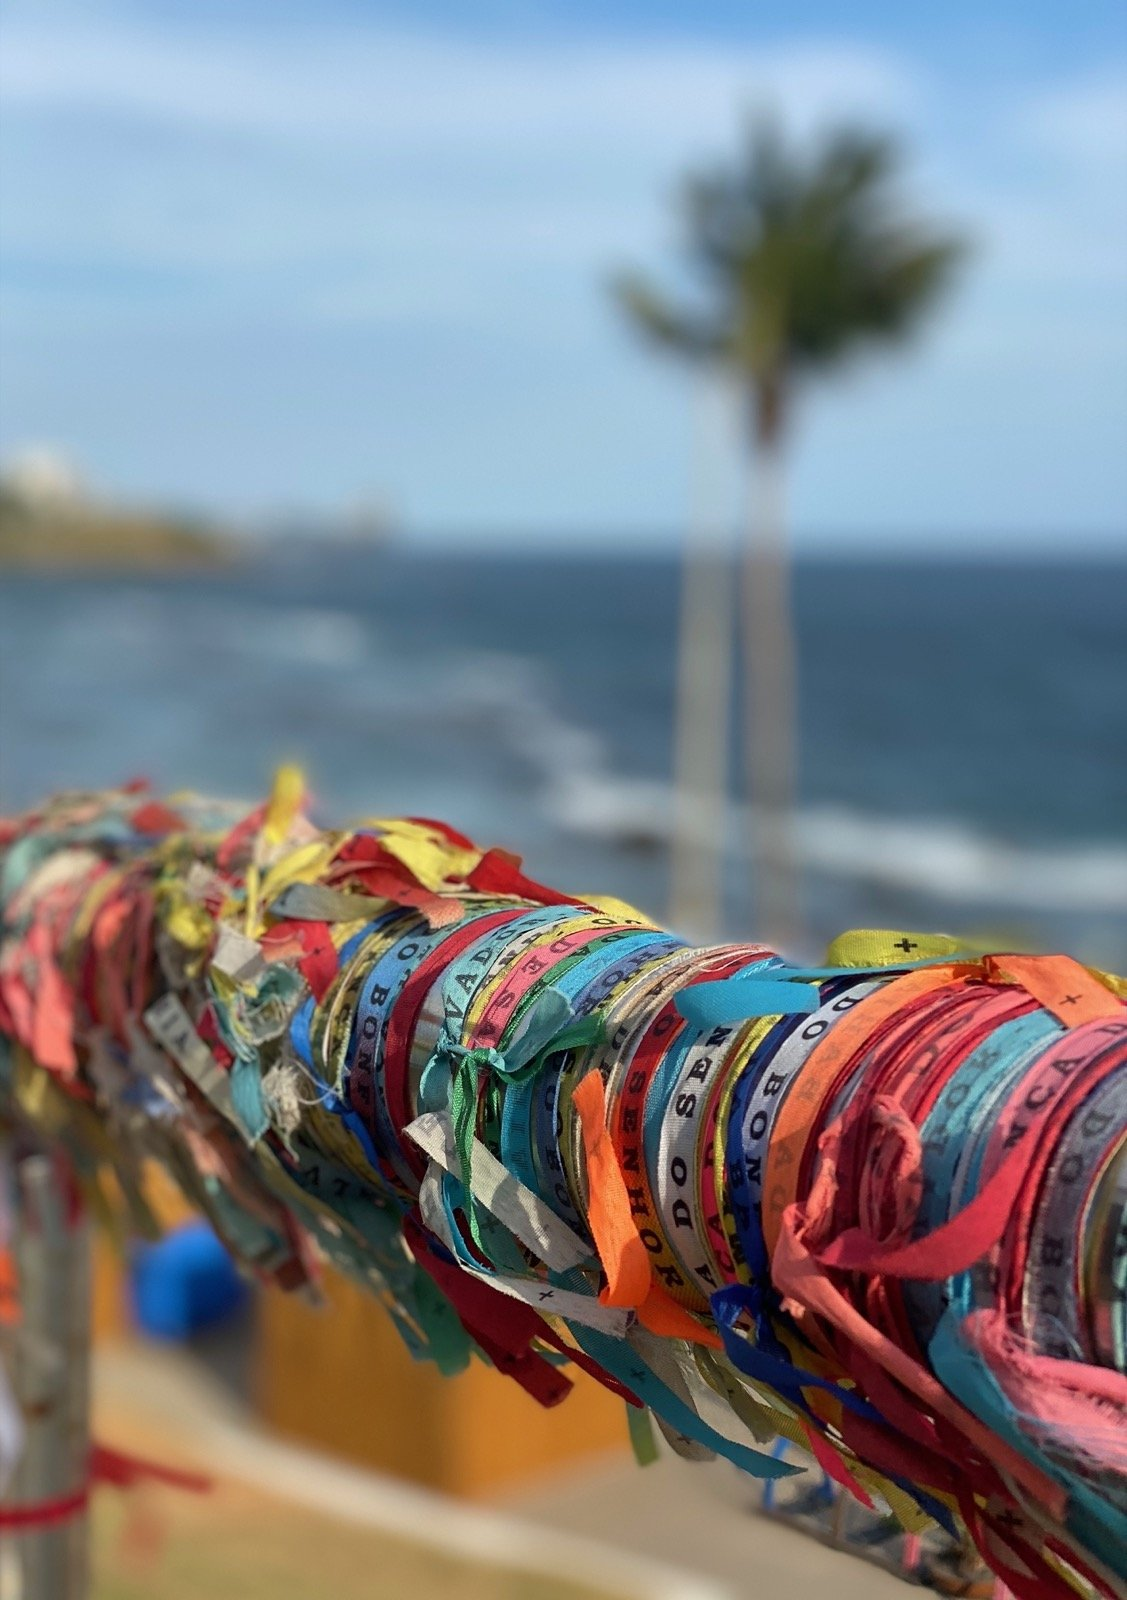 Several Bahia Bands tied around a pole with a blurred coconut tree and the ocean in the background